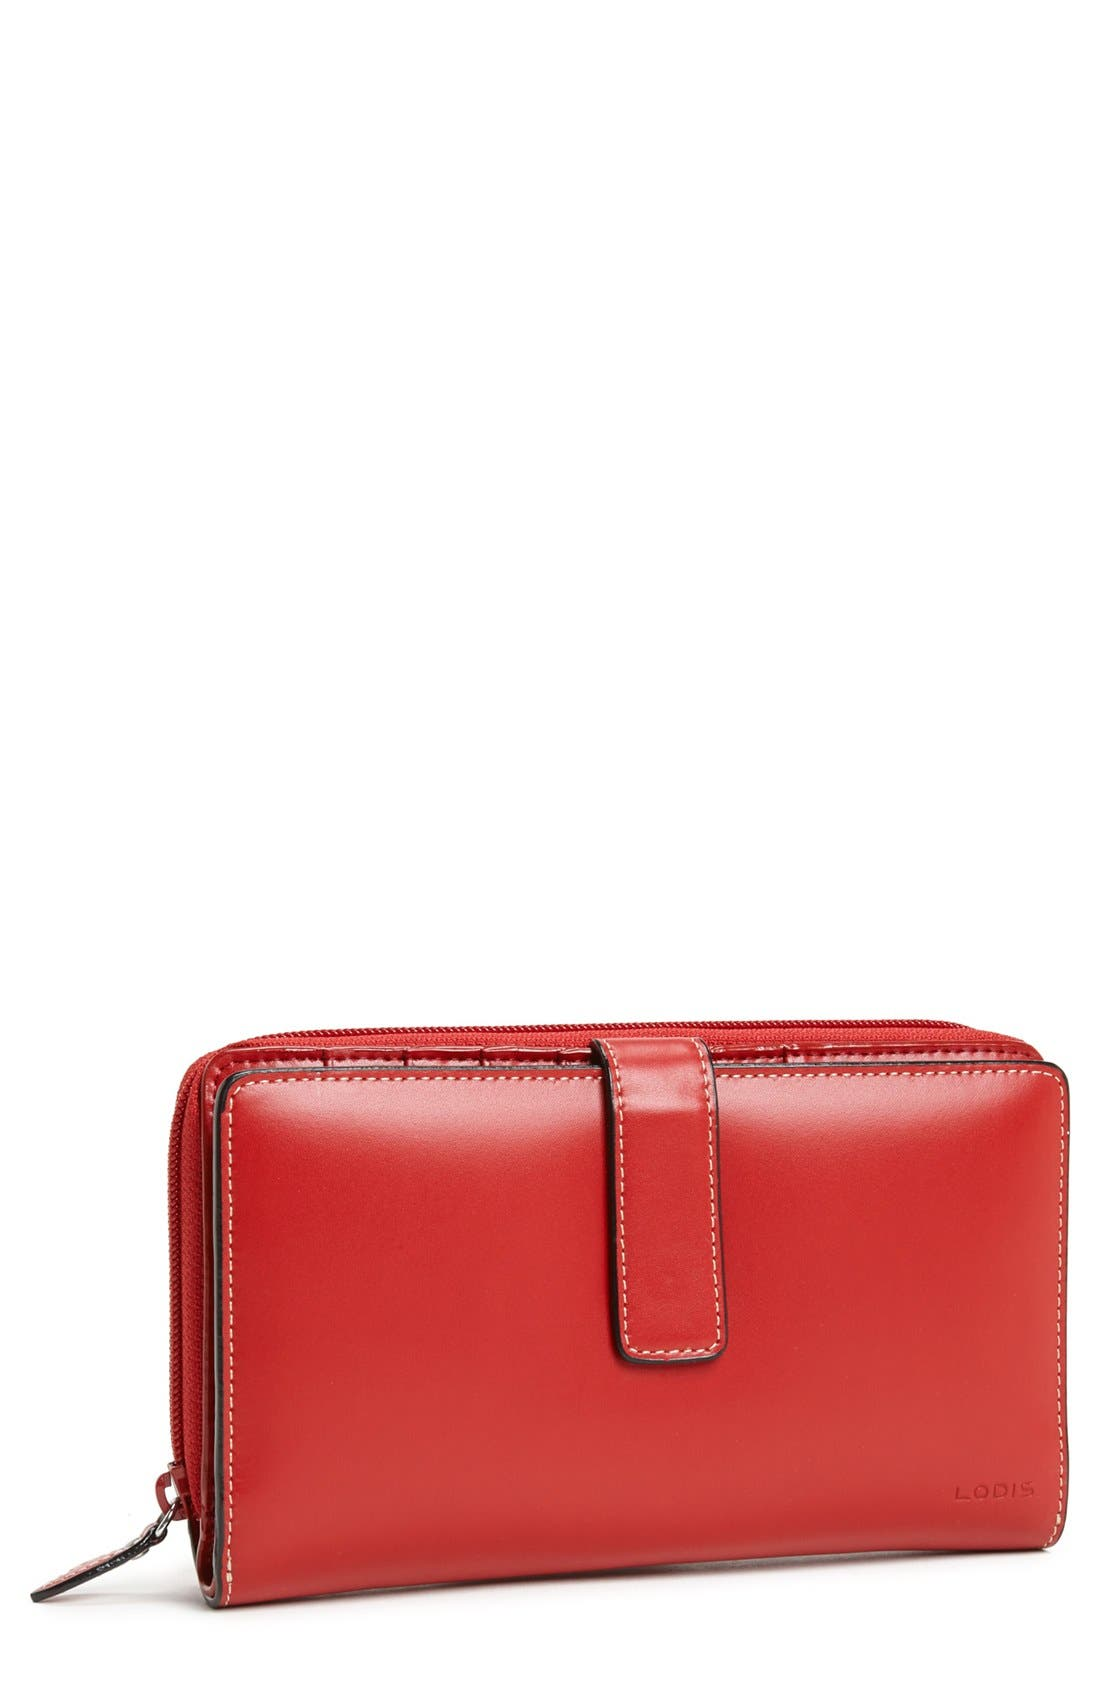 Alternate Image 1 Selected - Lodis 'Audrey - Deluxe' Checkbook Clutch Wallet